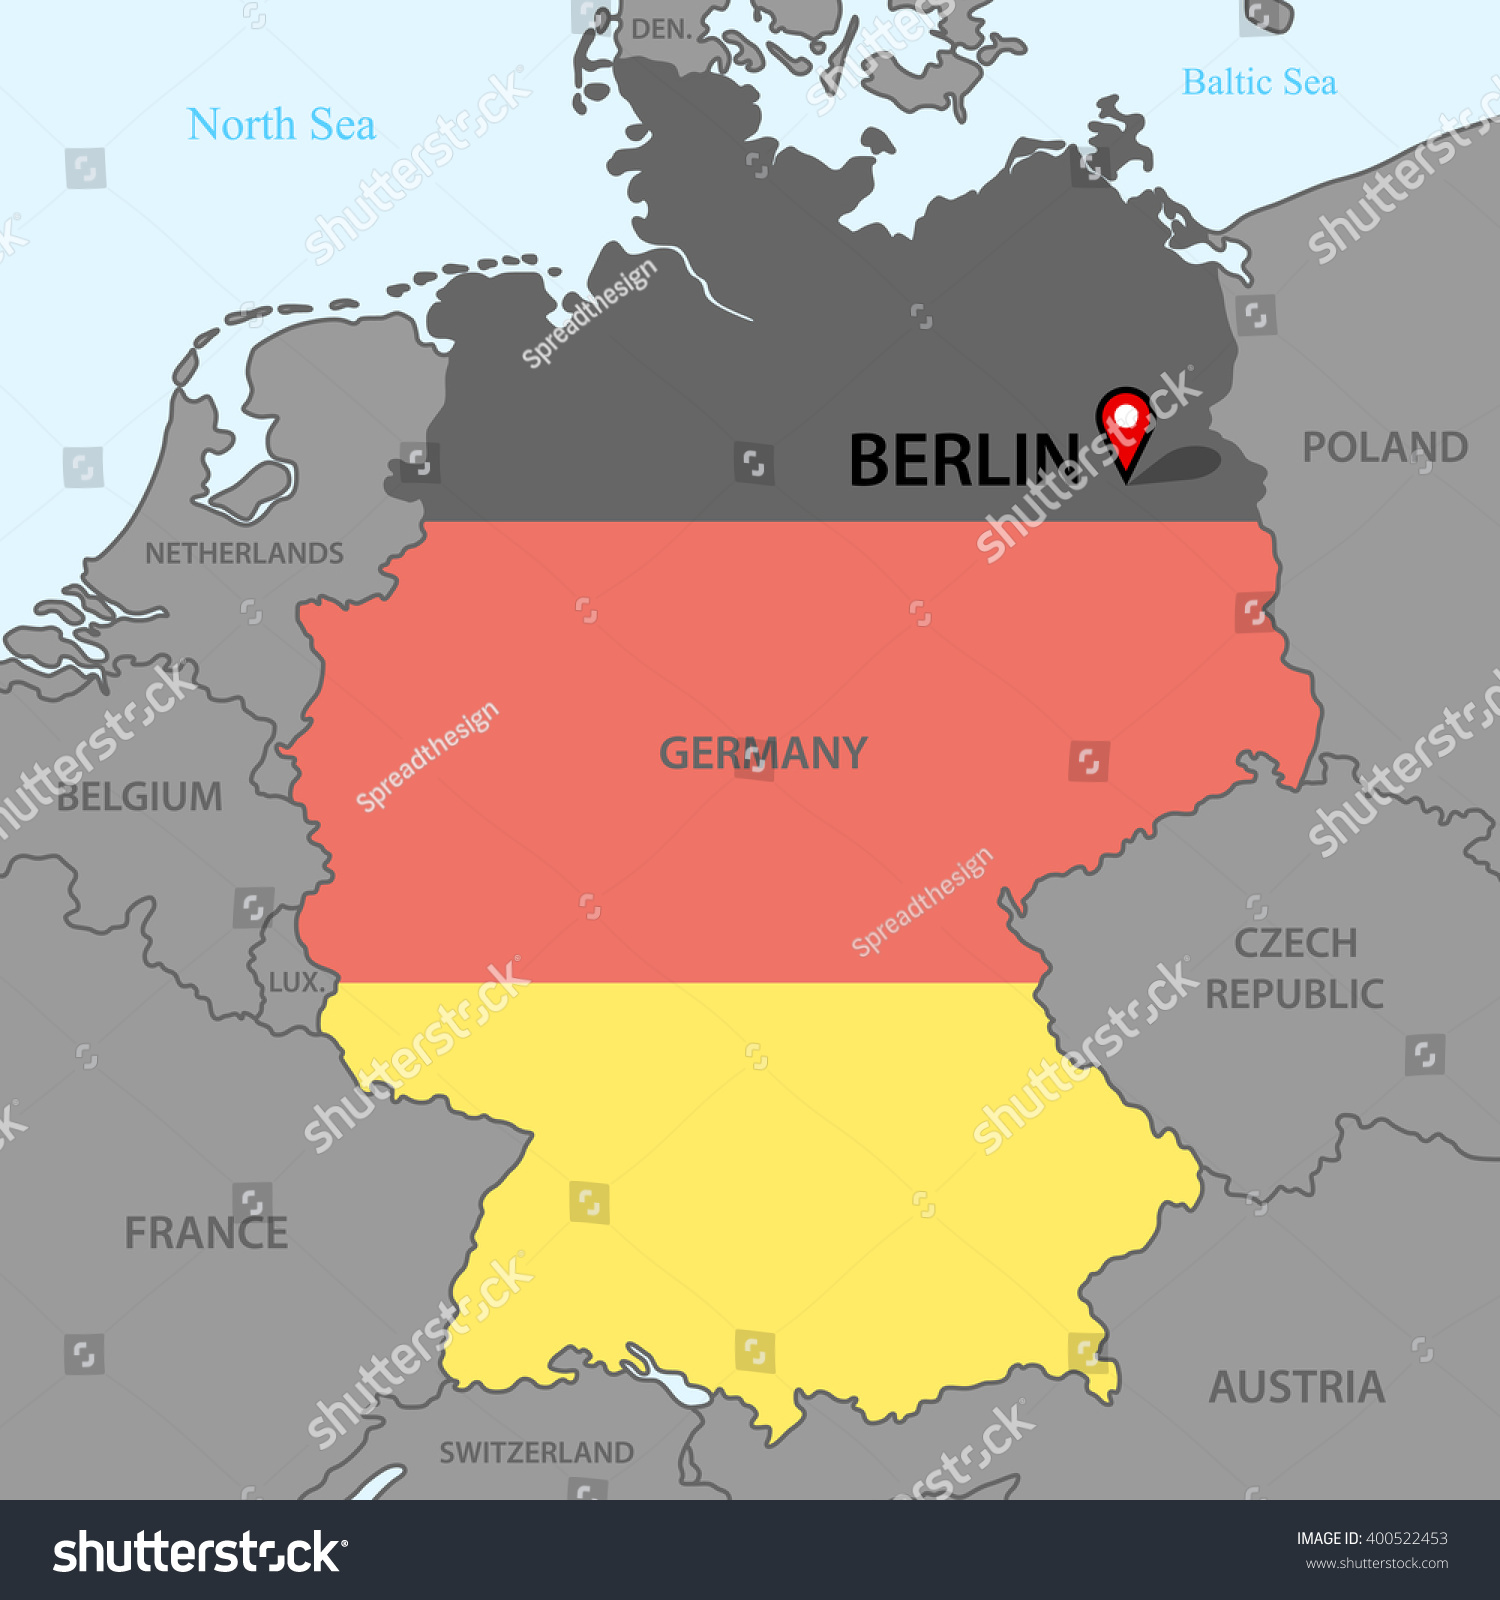 Germany Map Stock Vector Shutterstock - Germany map view